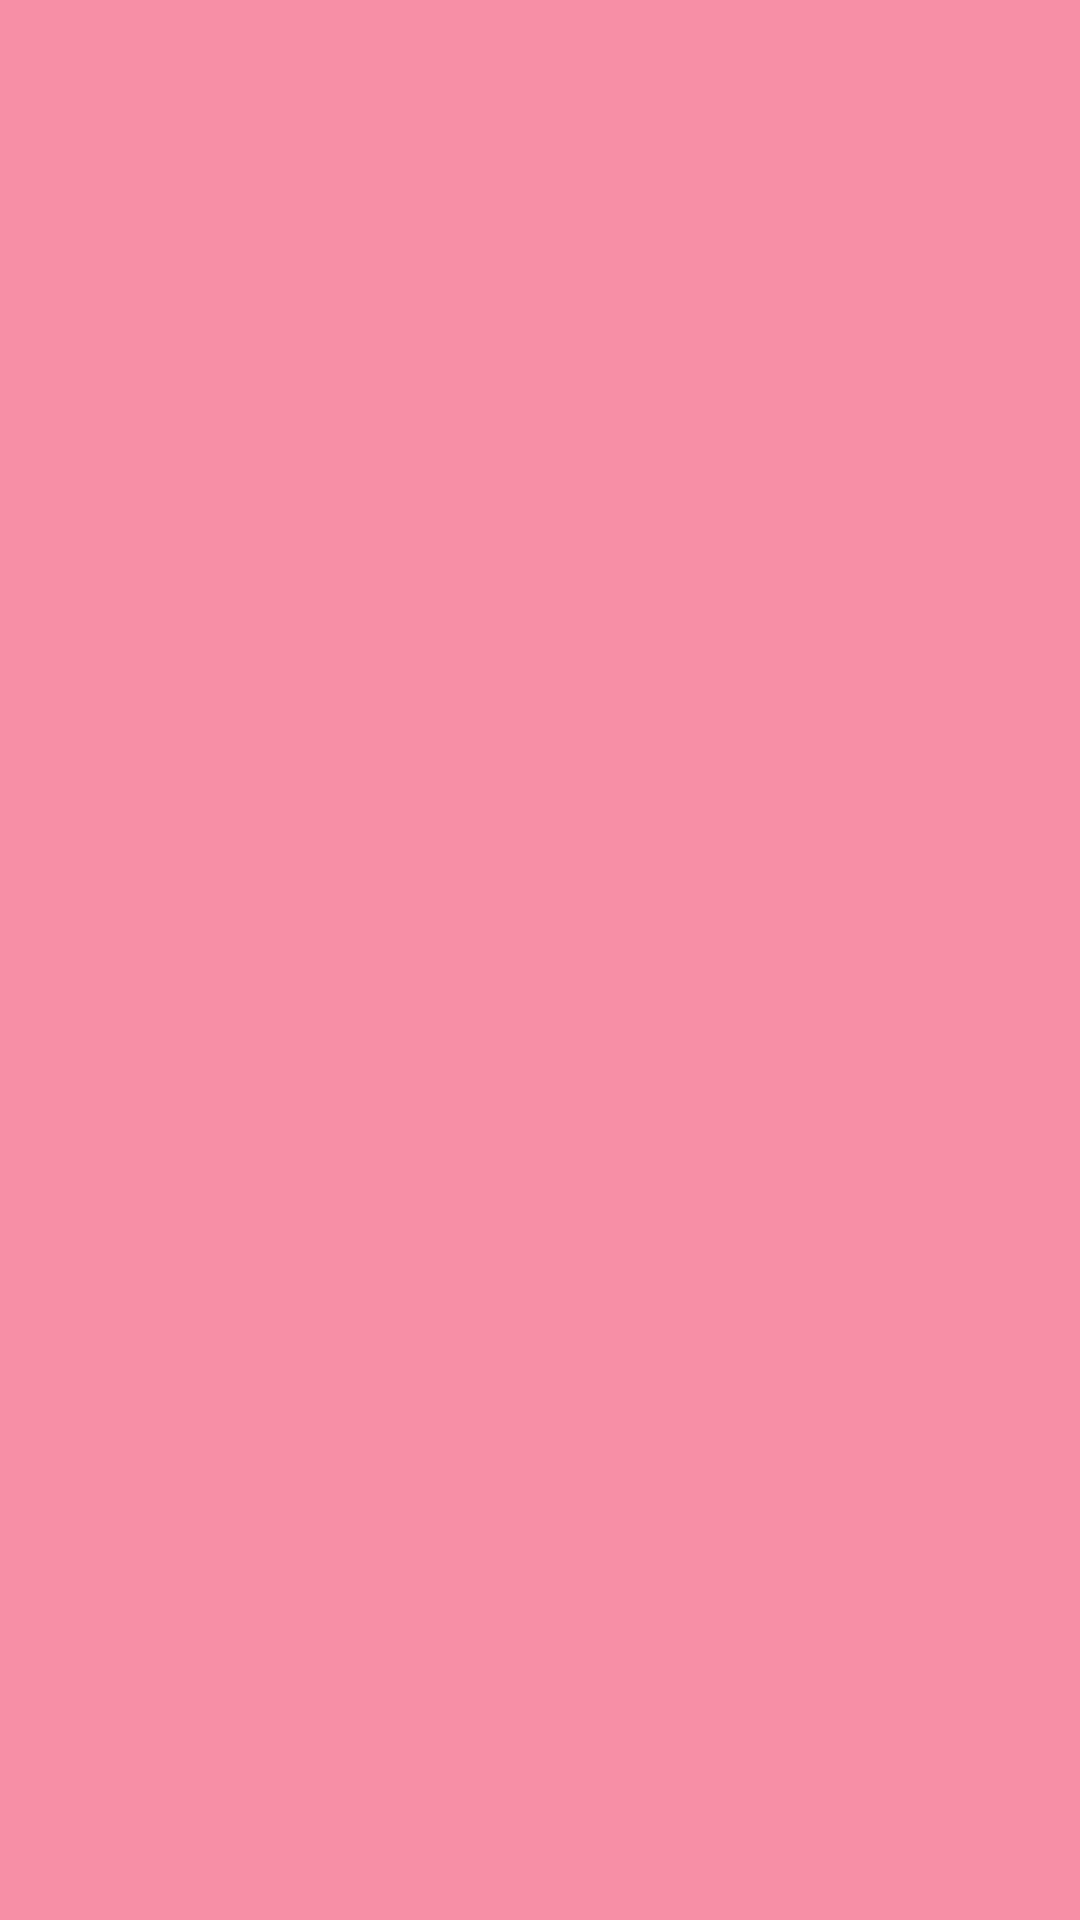 1080x1920 Pink Sherbet Solid Color Background